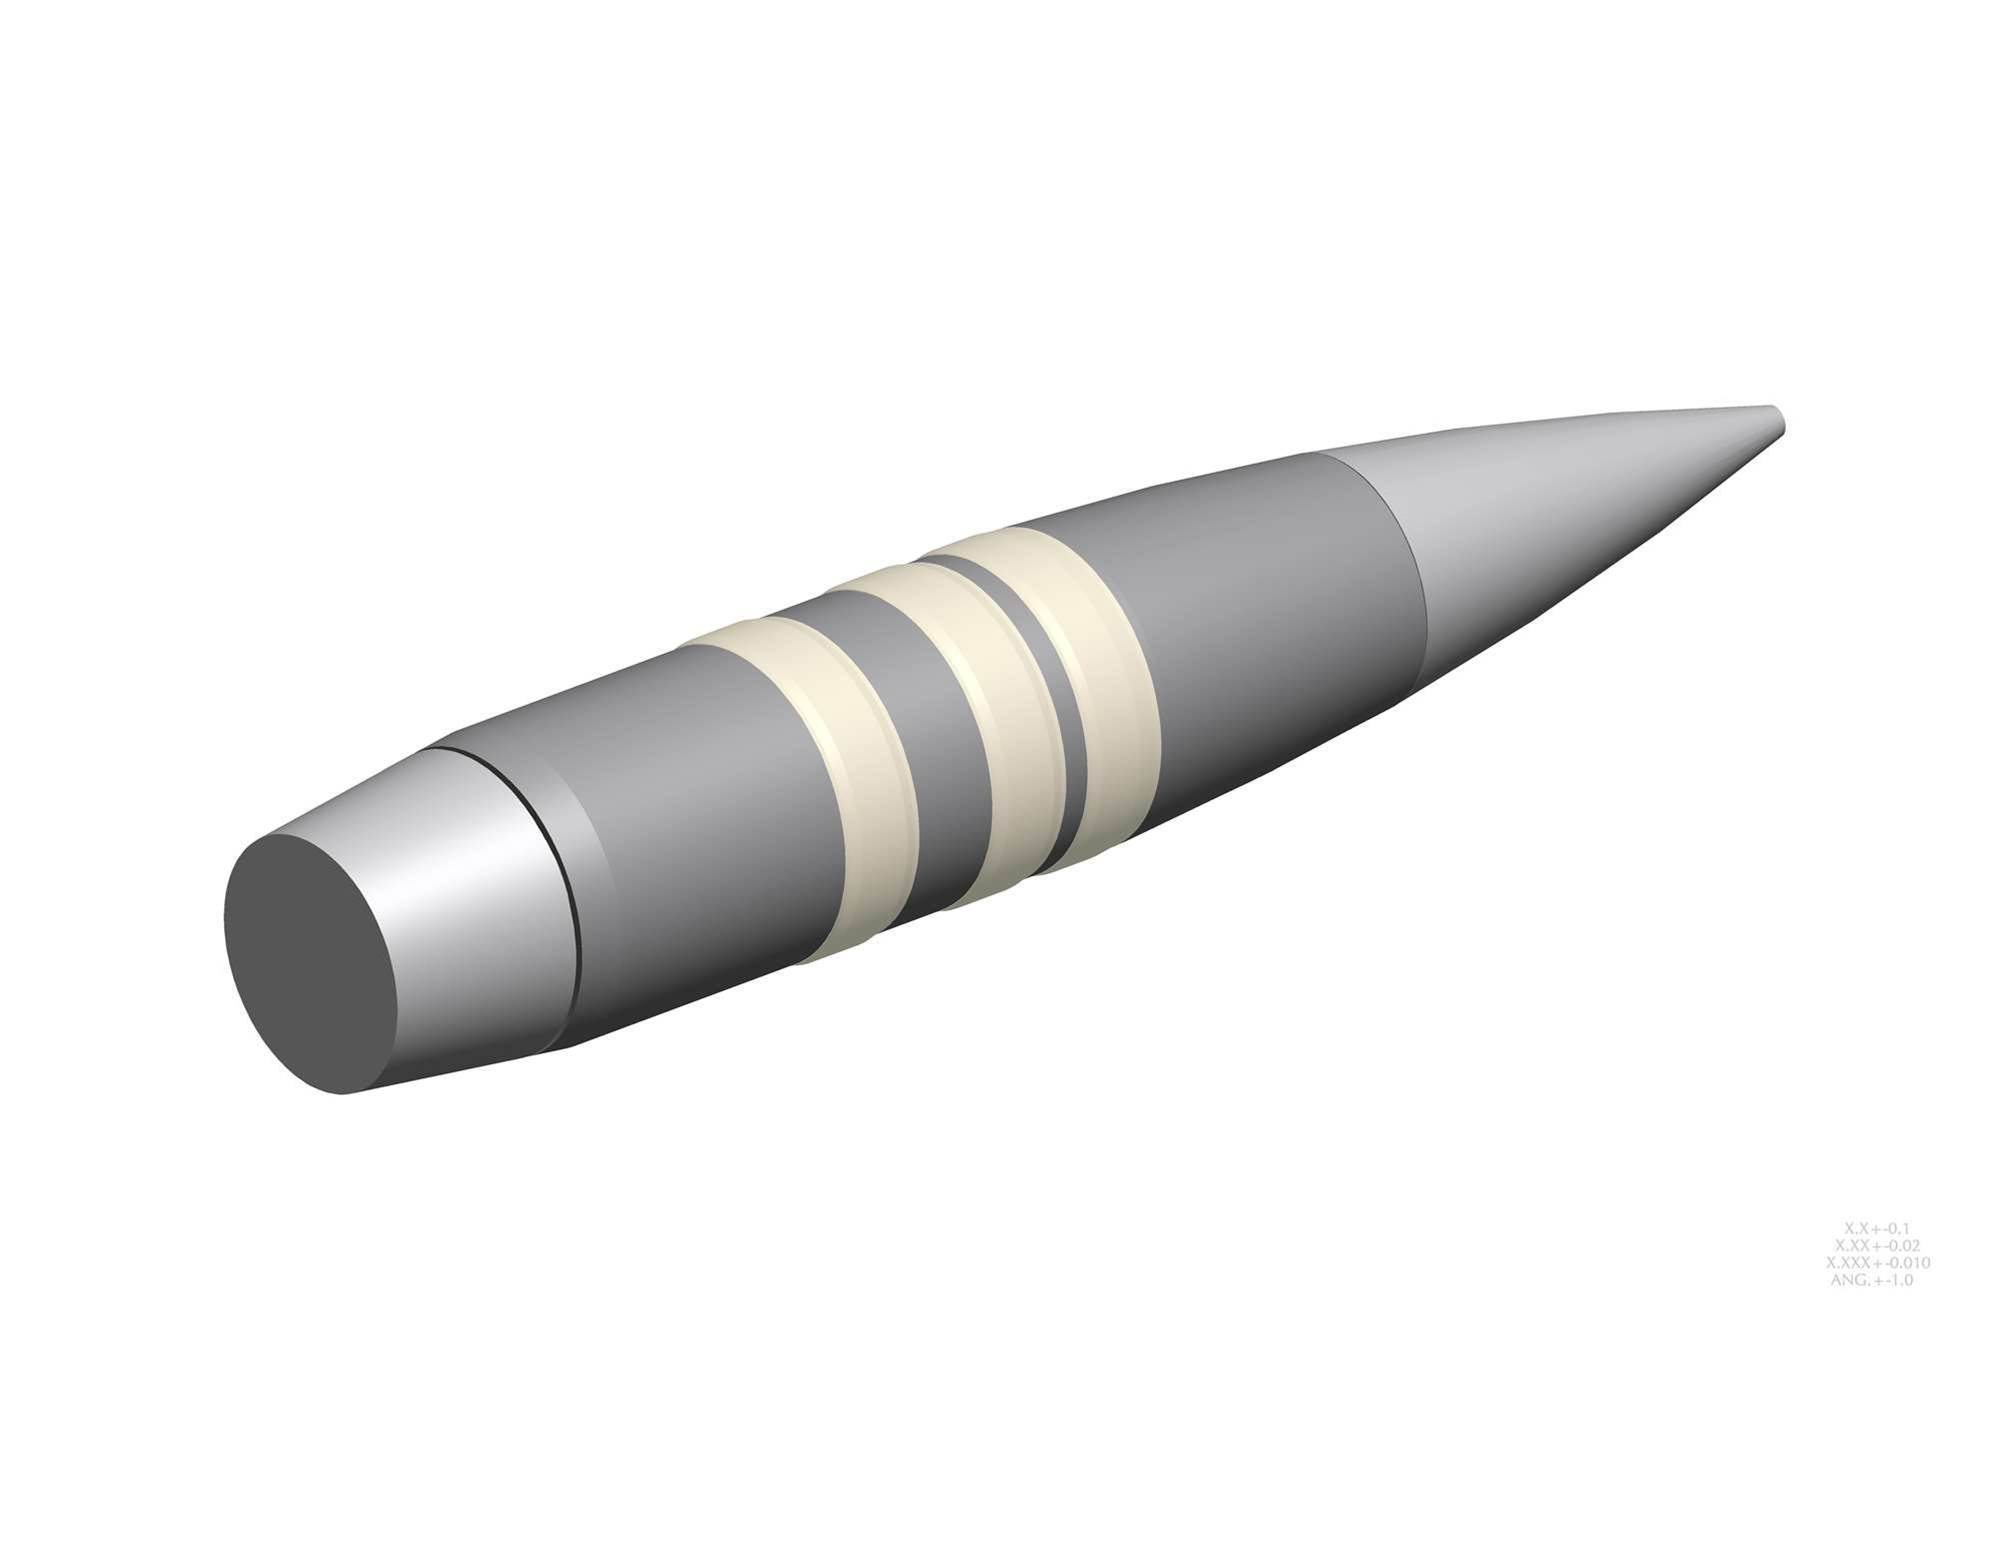 Department Of Defense Tests A Bullet That Can Steer